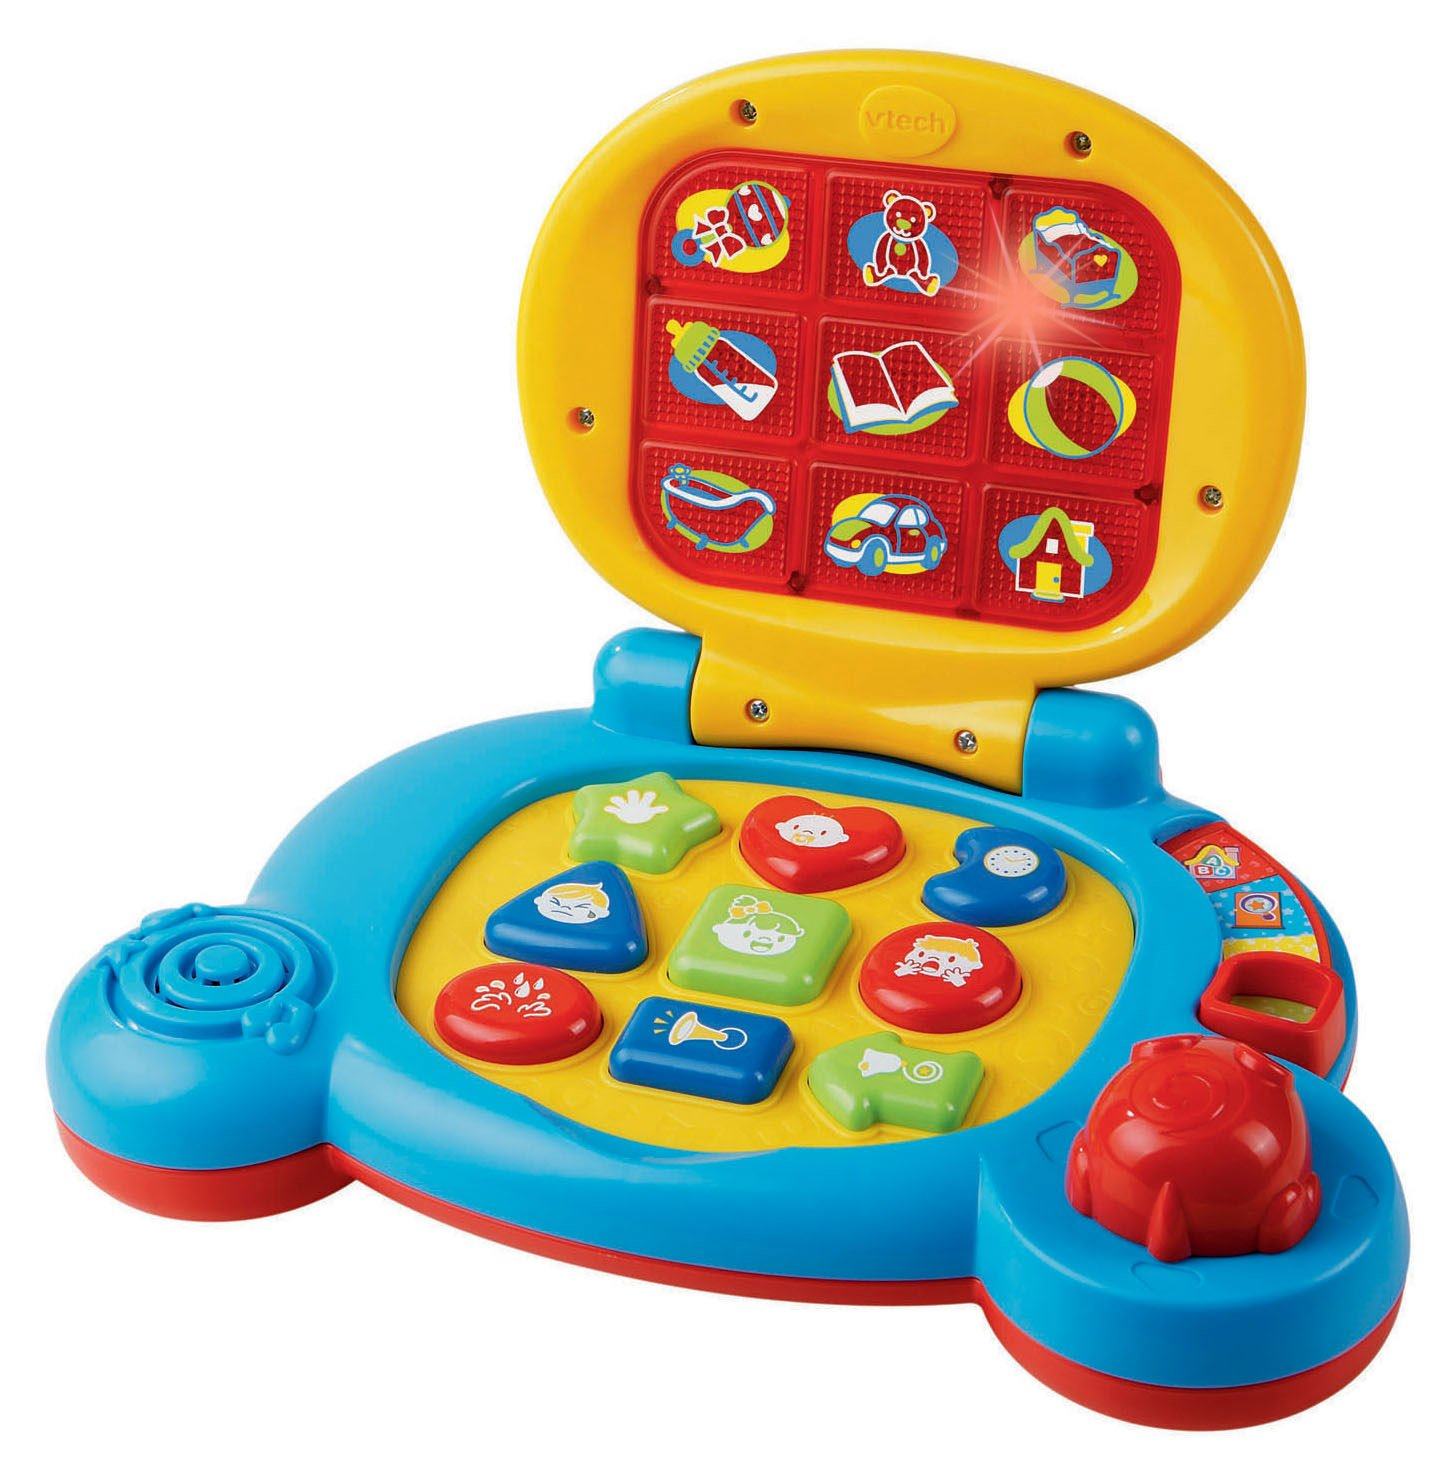 Apprentissage pour ordinateur portable Amazon VTech Baby Frustration Gratuit